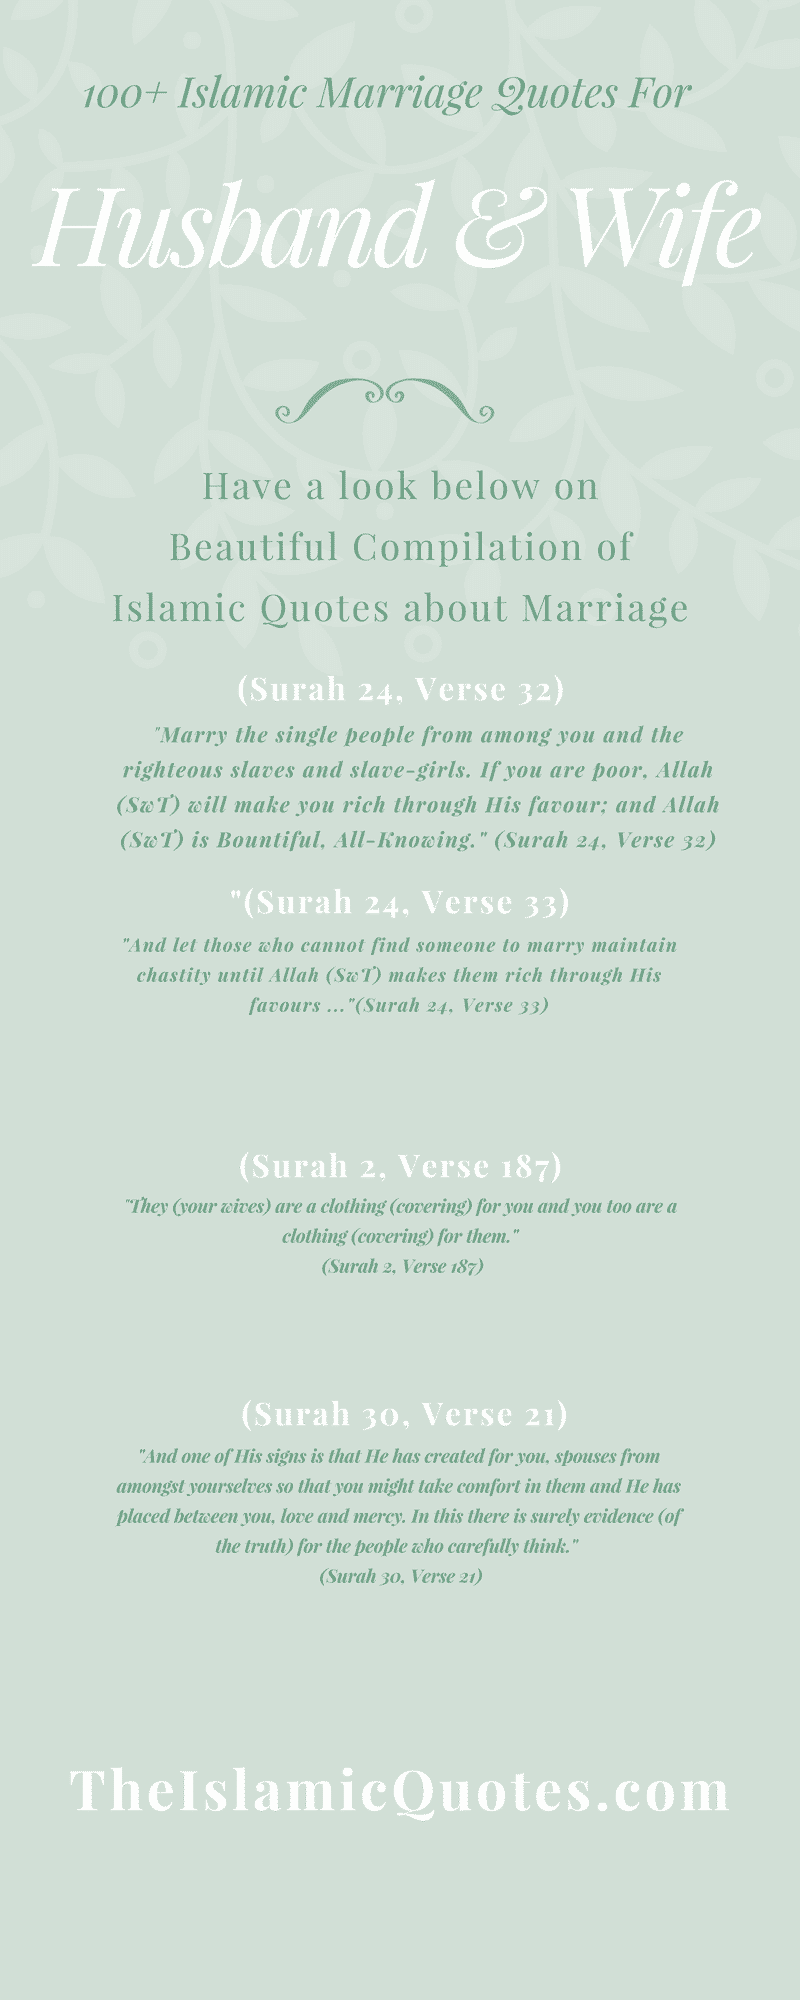 Infographic about Marriage